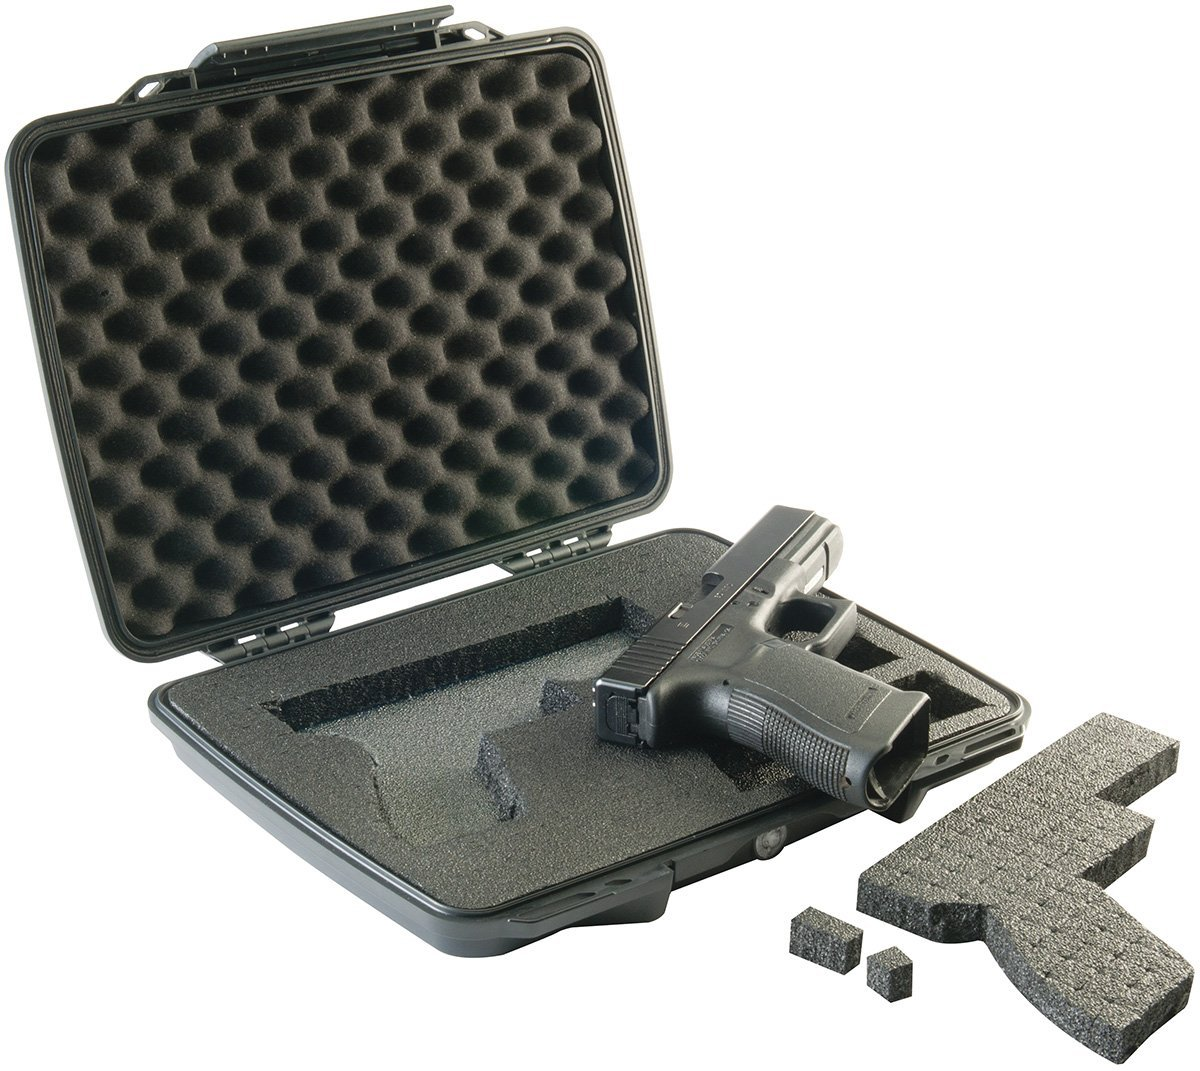 Pelican P1075 Pistol Hard Case Open